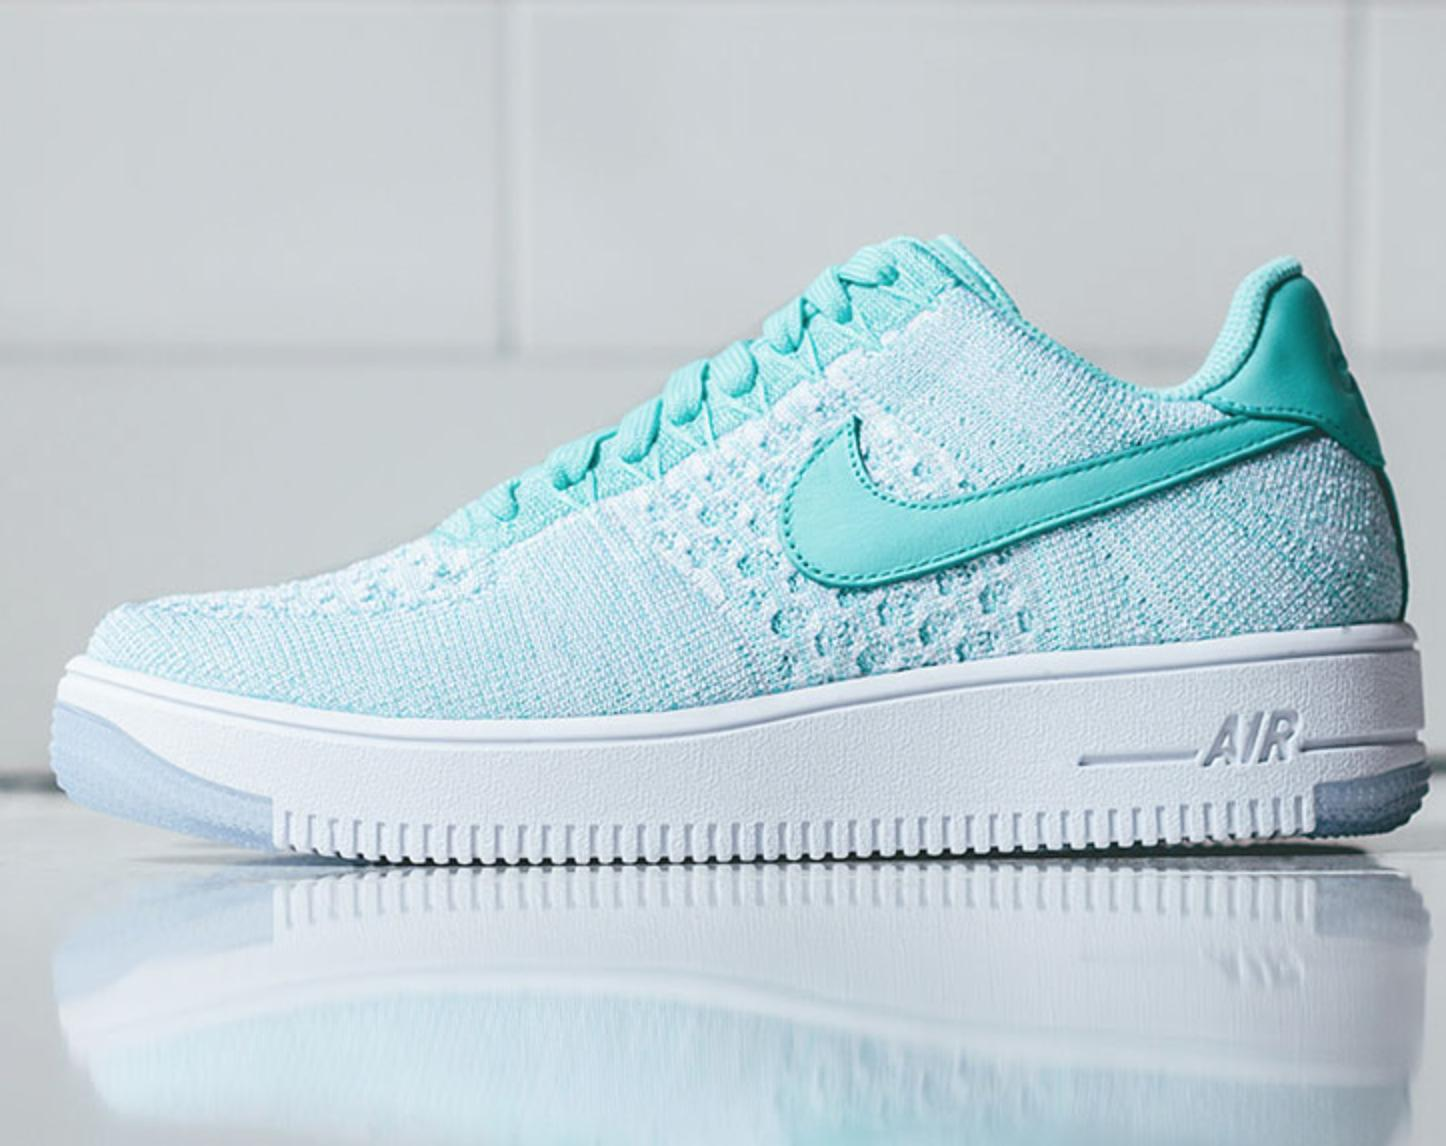 $160 Women's AIR FORCE 1 ULTRA FLYKNIT LOW On Sale @ Nike Store